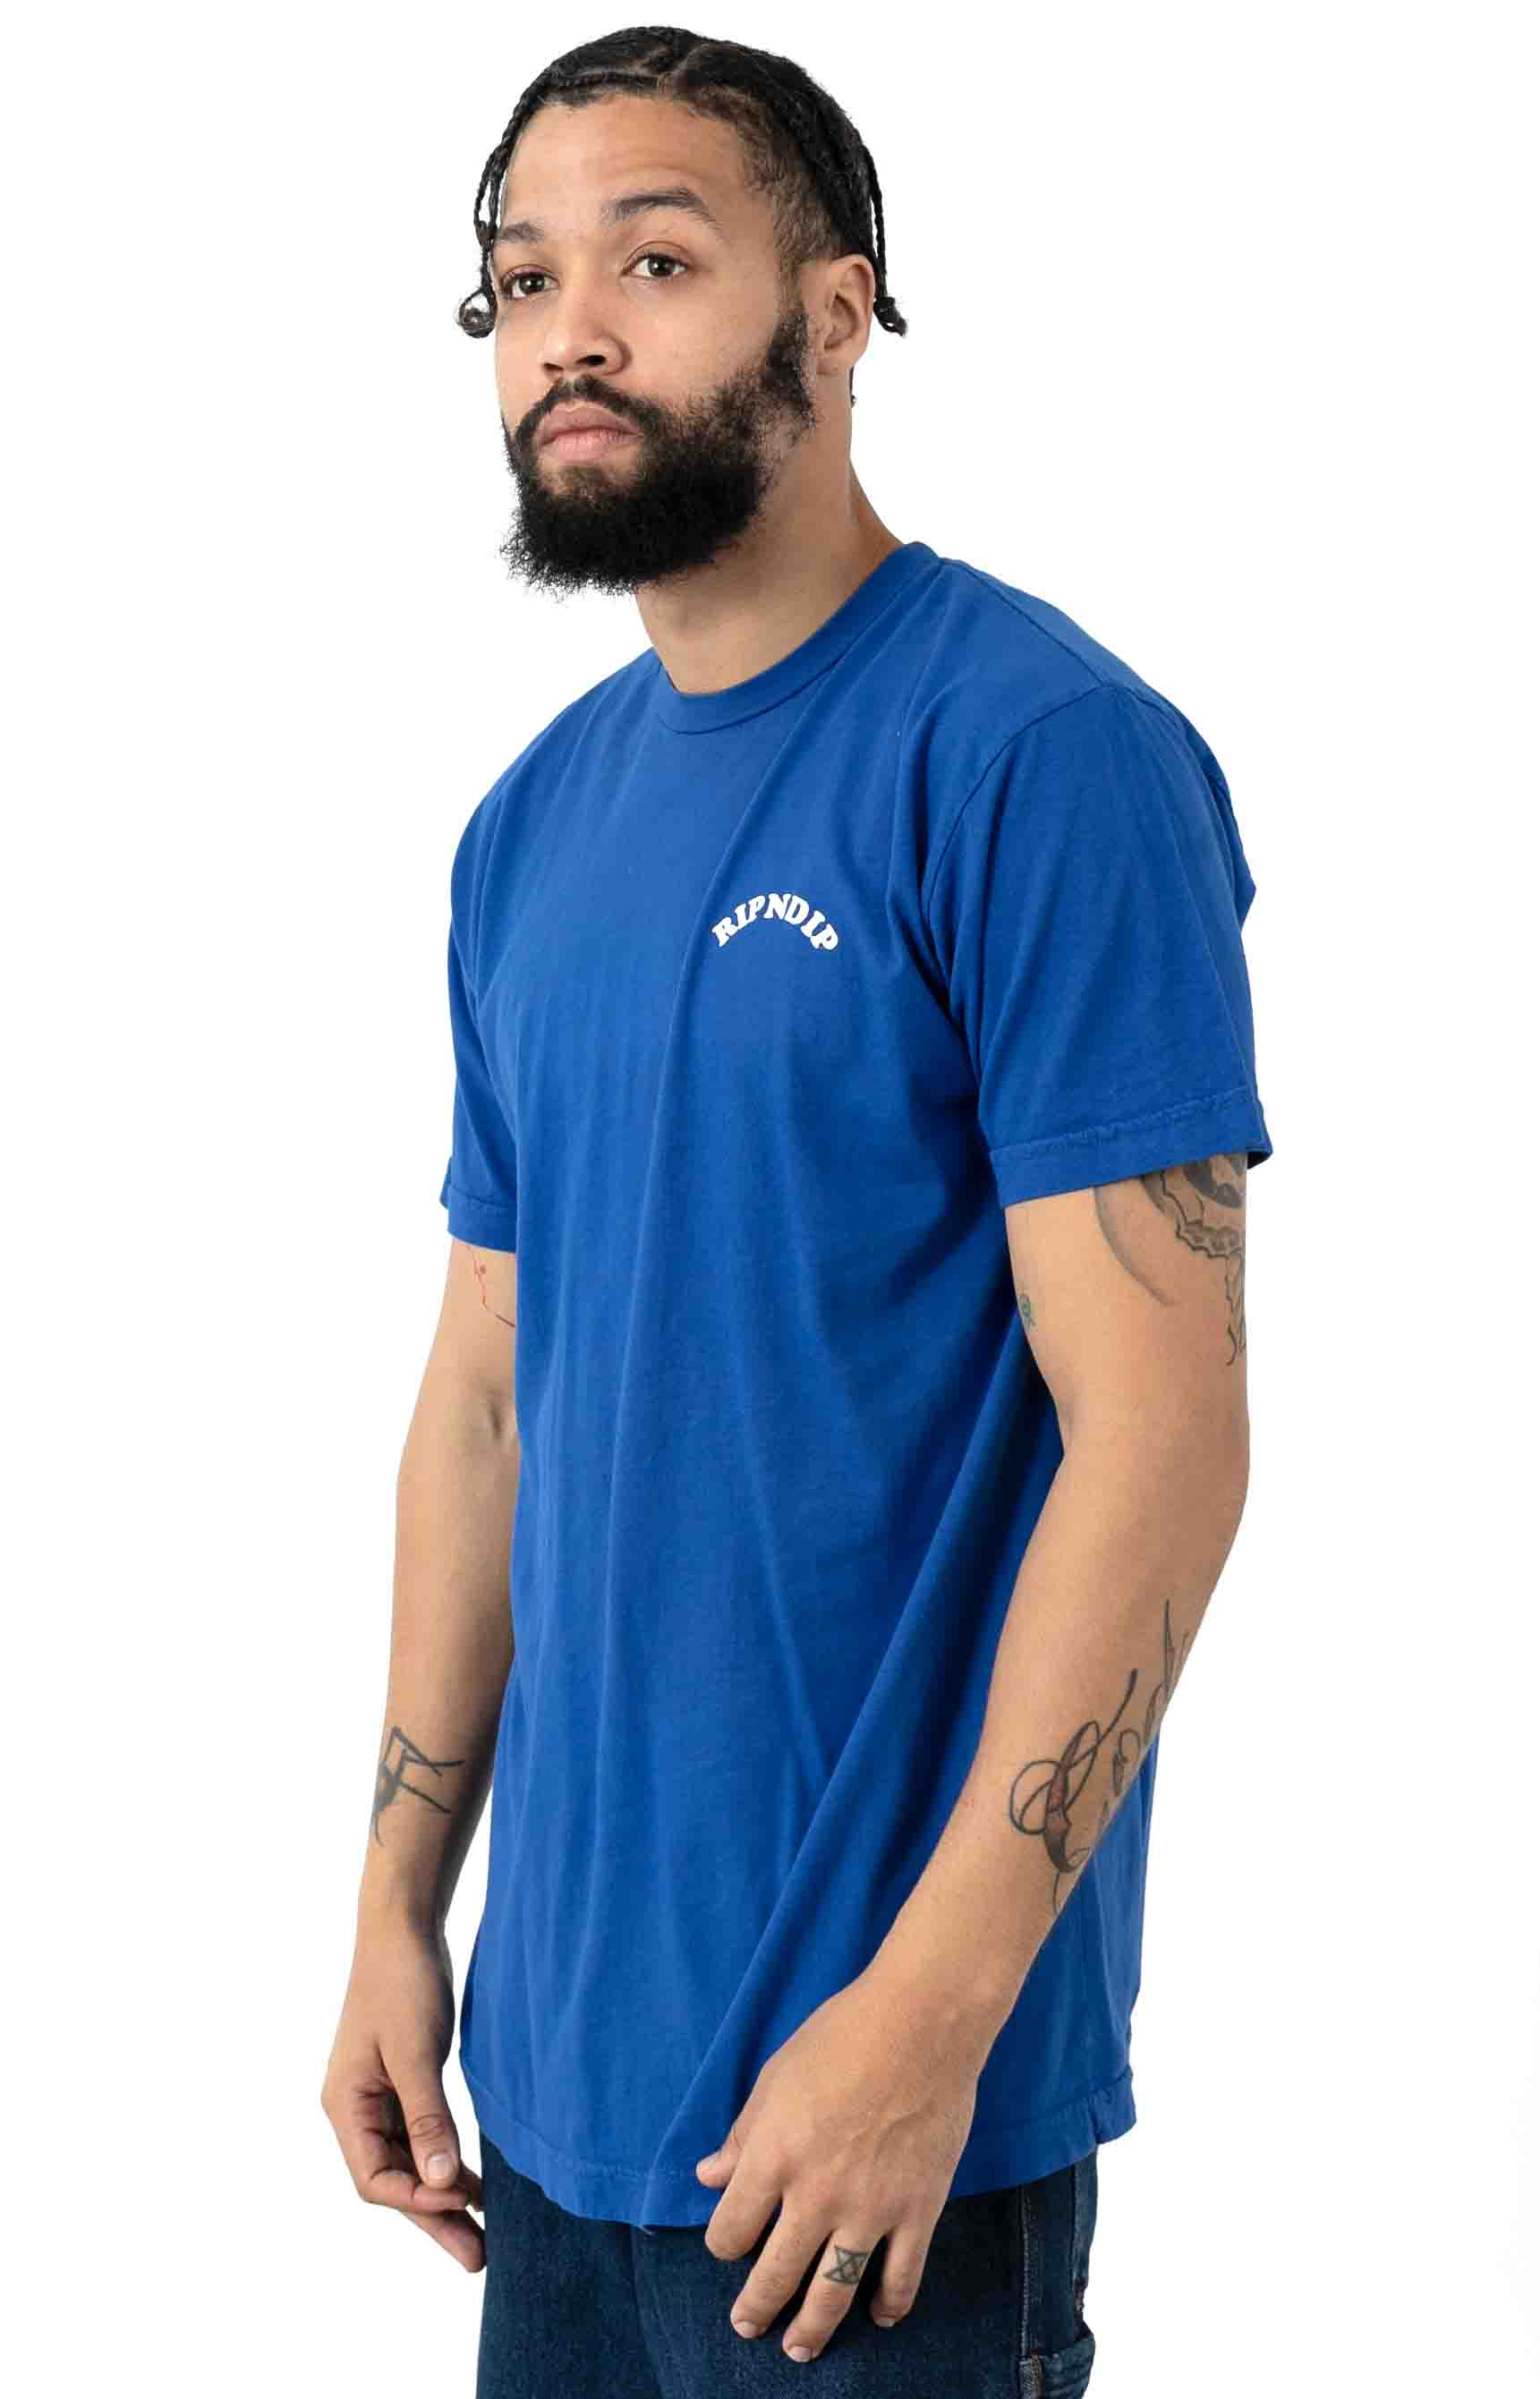 Praise T-Shirt - Royal Blue 3